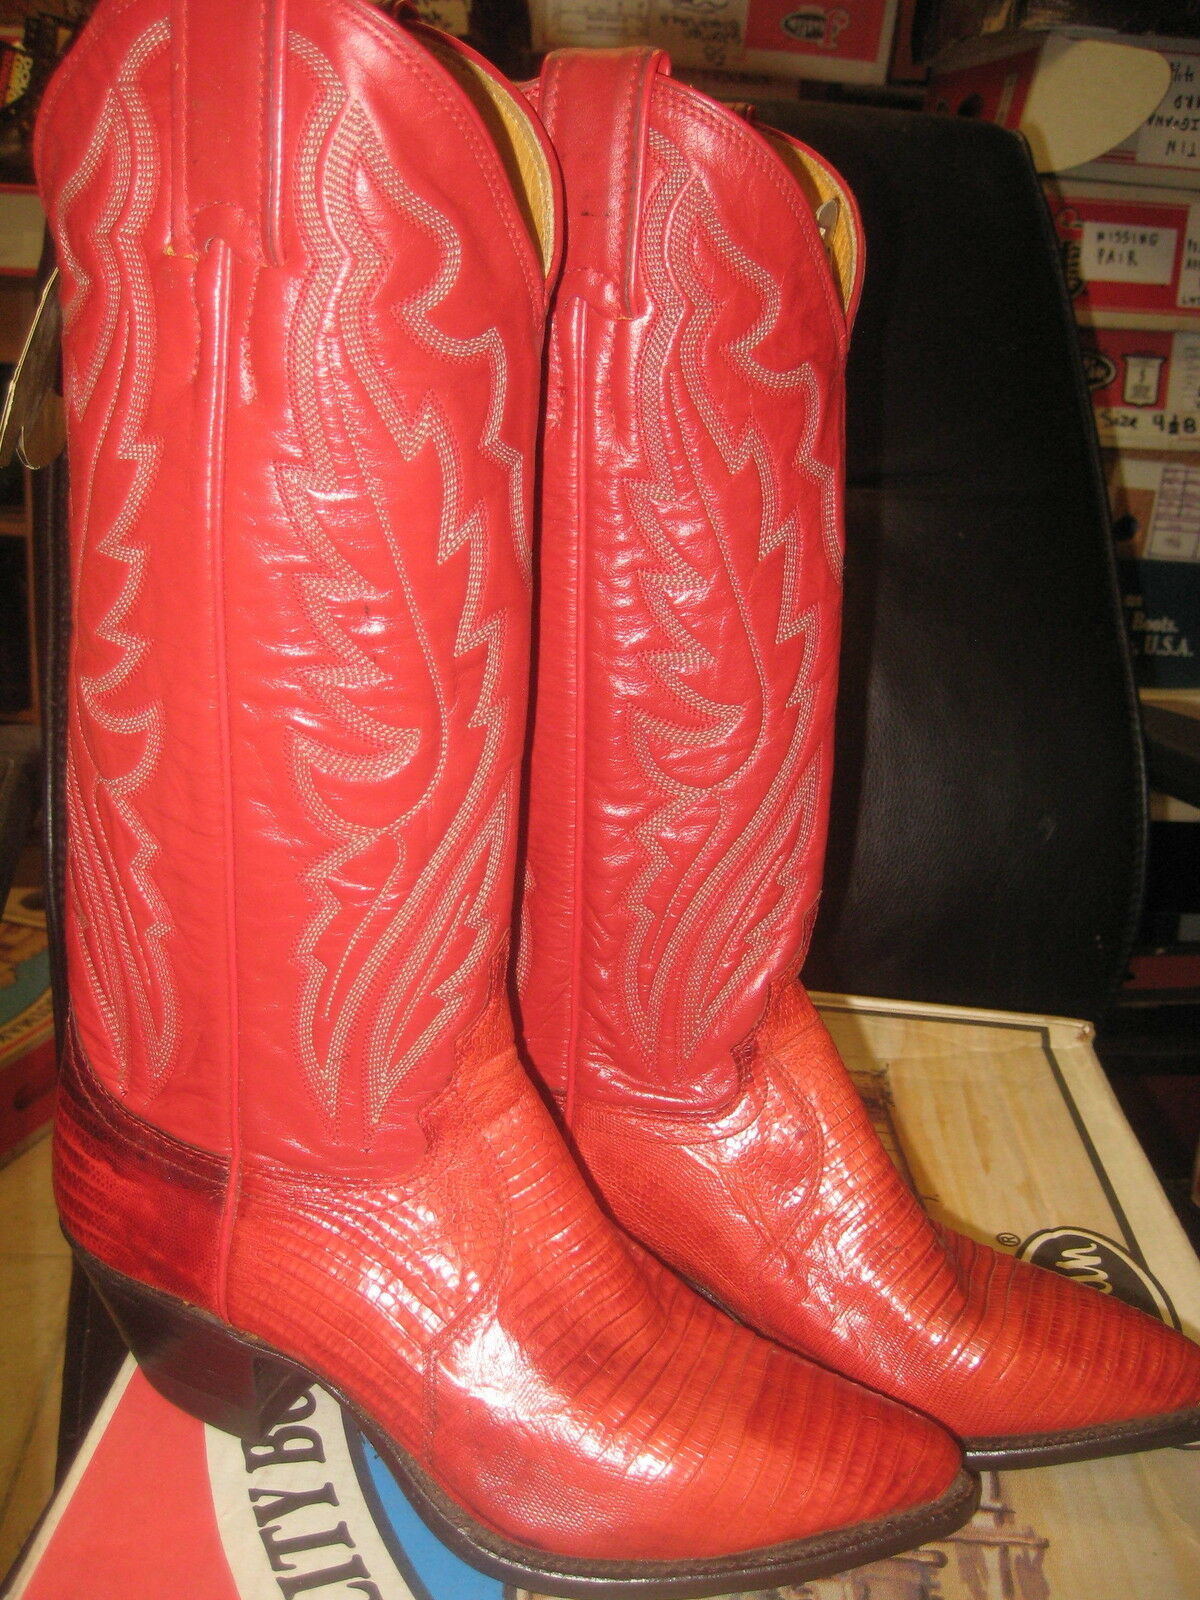 Justin Boots women's Red Lizard Leather Cowboy Boot US  5820  Size US Boot 4 B ef7f33